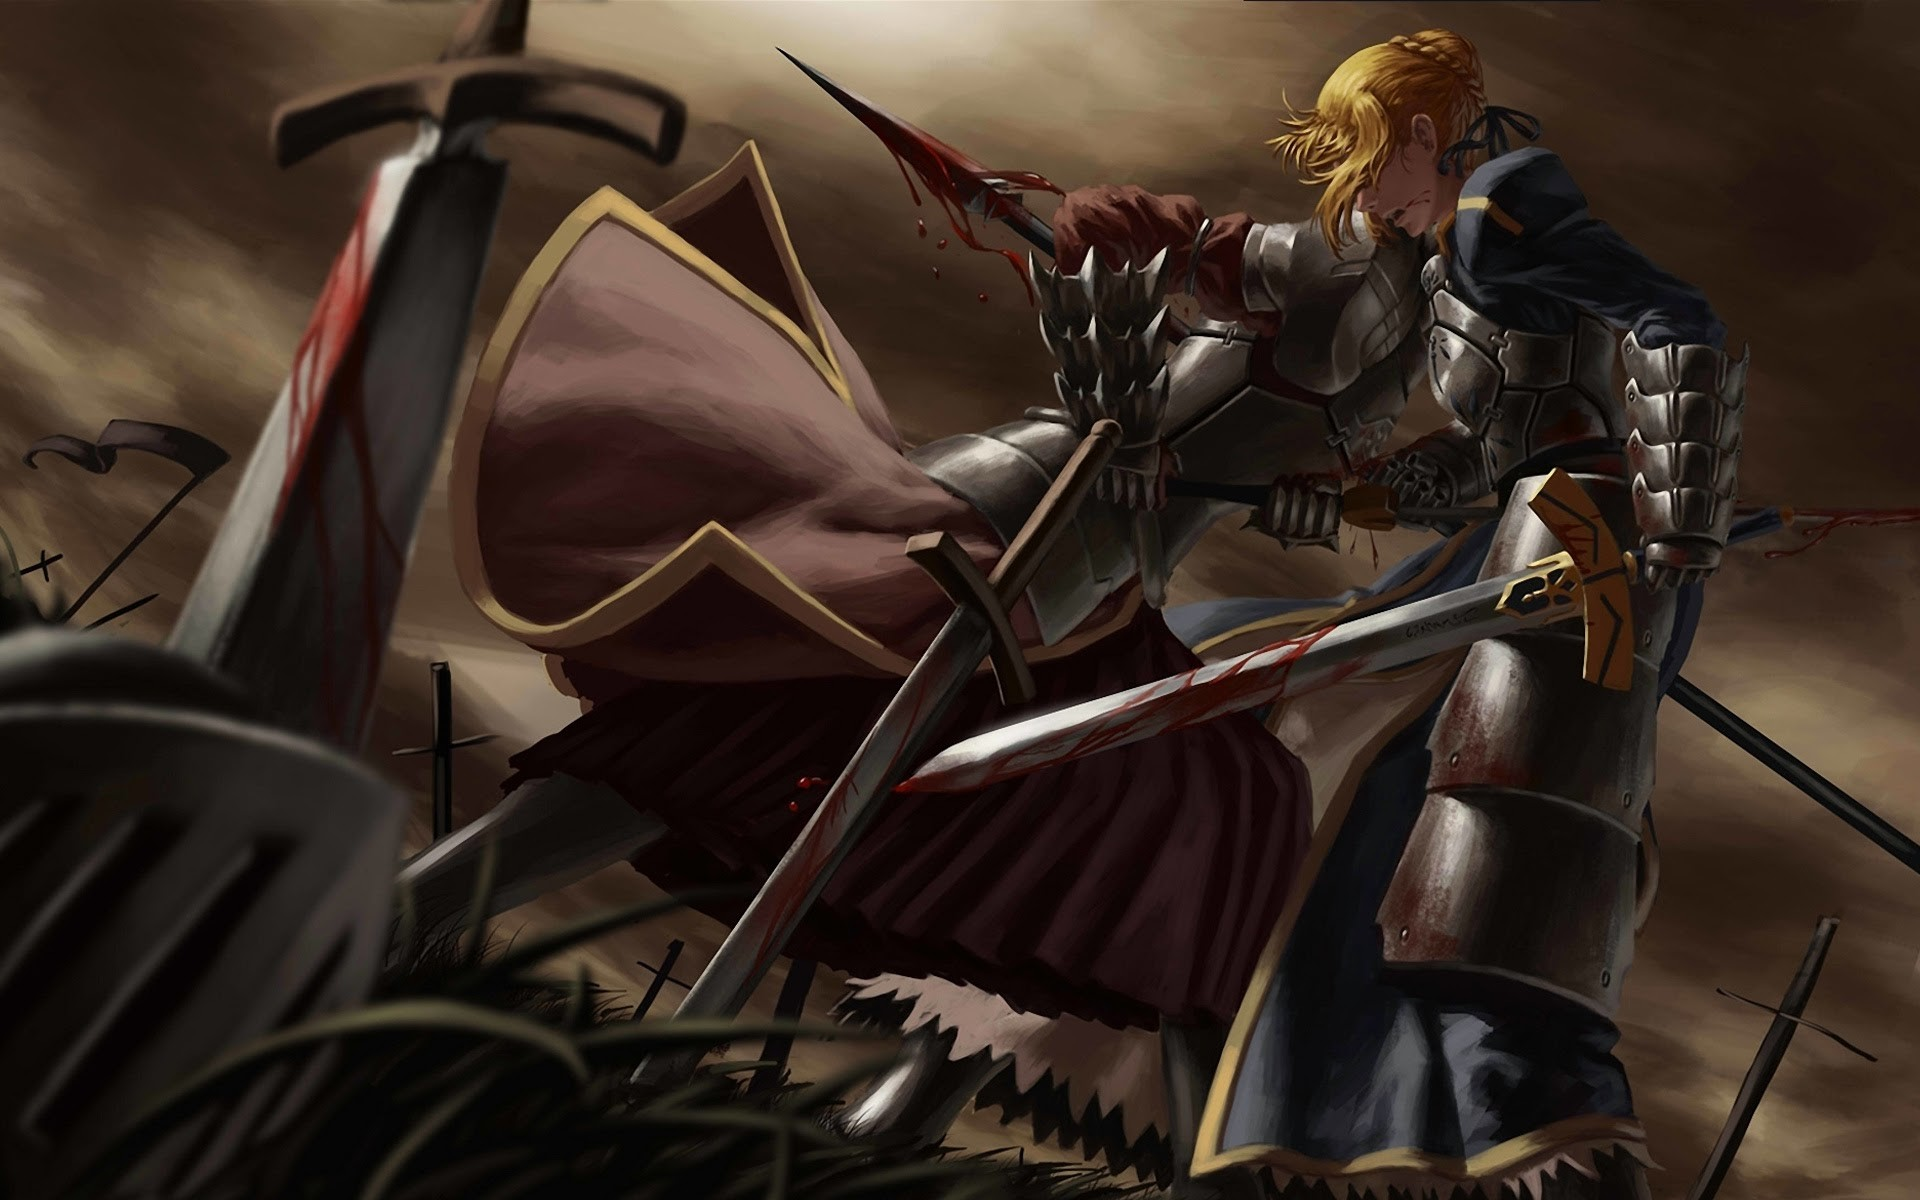 Res: 1920x1200, saber fighting fate stay night wallpaper anime blonde armor girl sword  knight  widescreen a798.